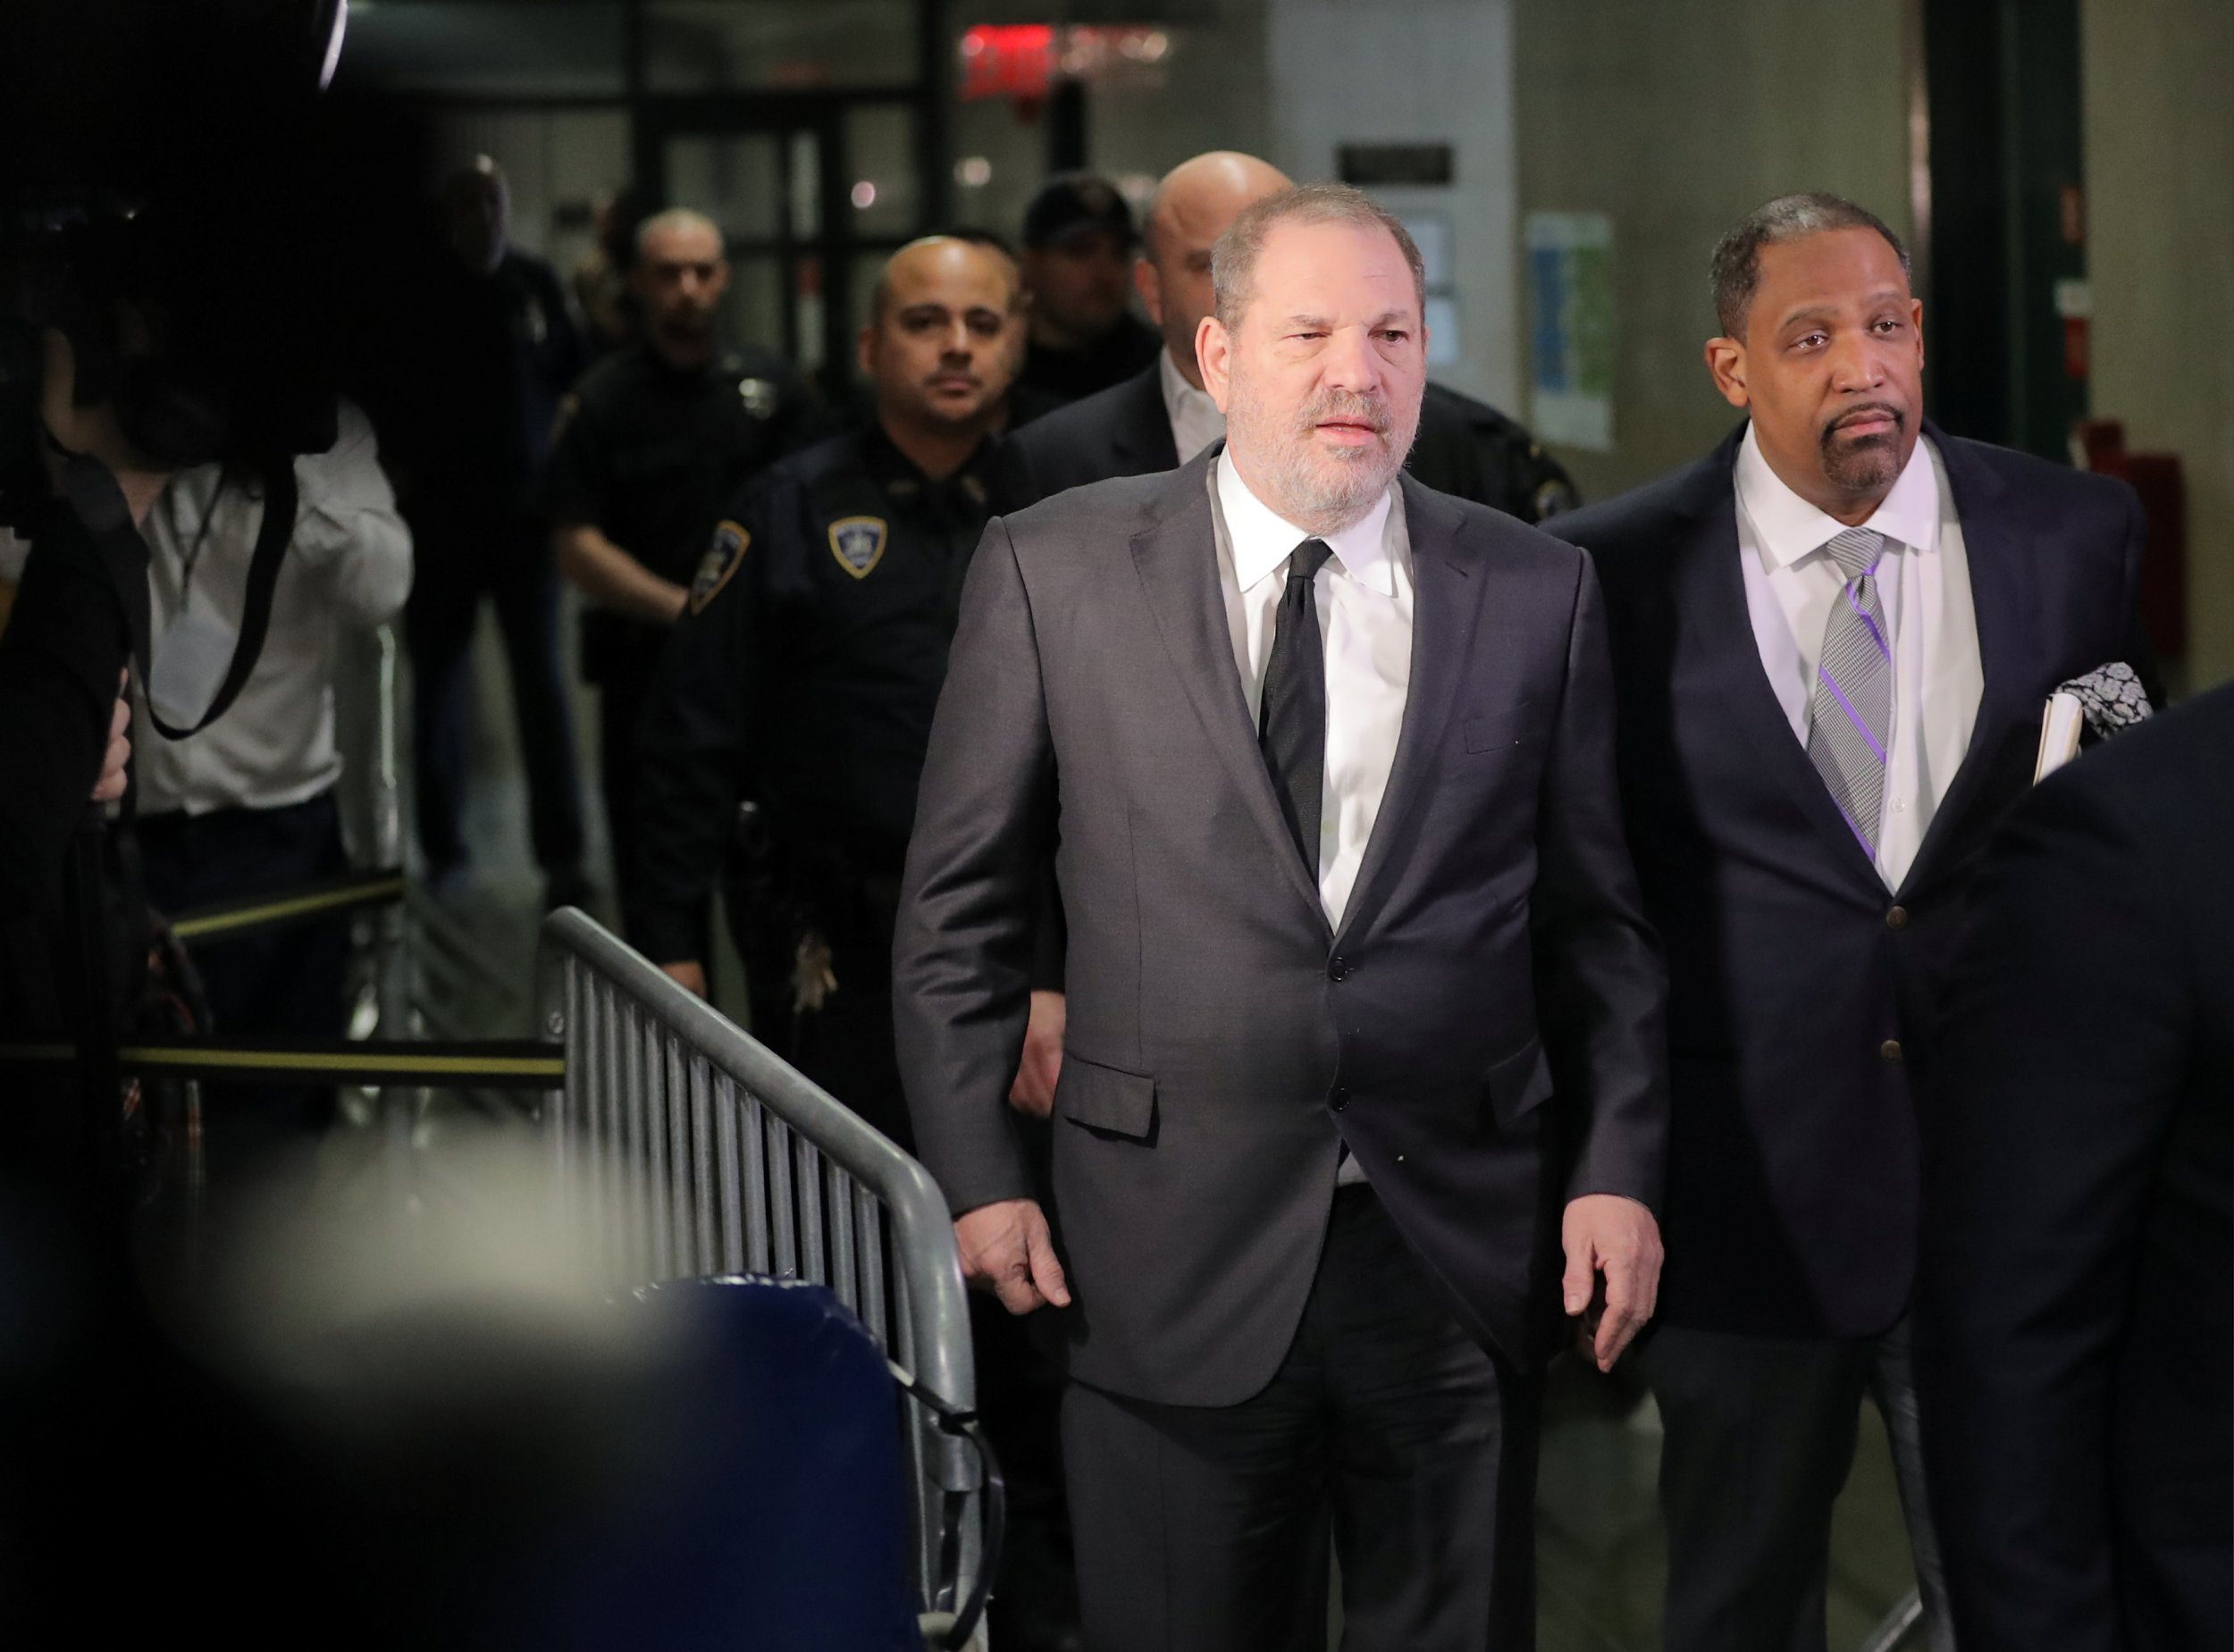 Harvey Weinstein heads back to court as judge approves changes in his legal team